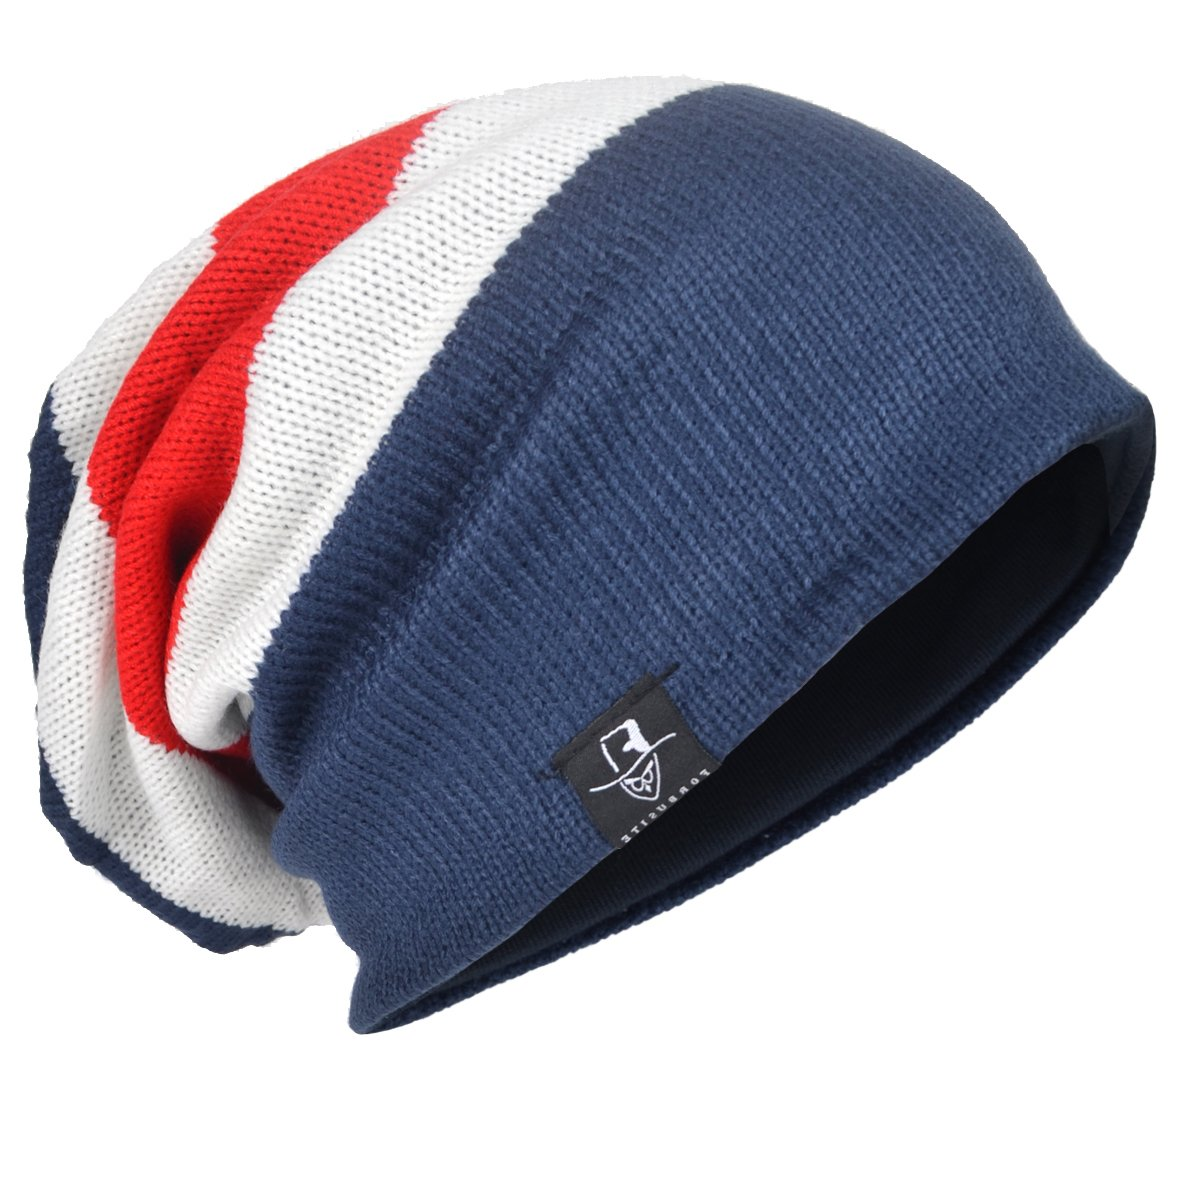 Mens Knit Beanie Slouch Baggy Skull Cap Vintage Long Hip-hop Winter Hat